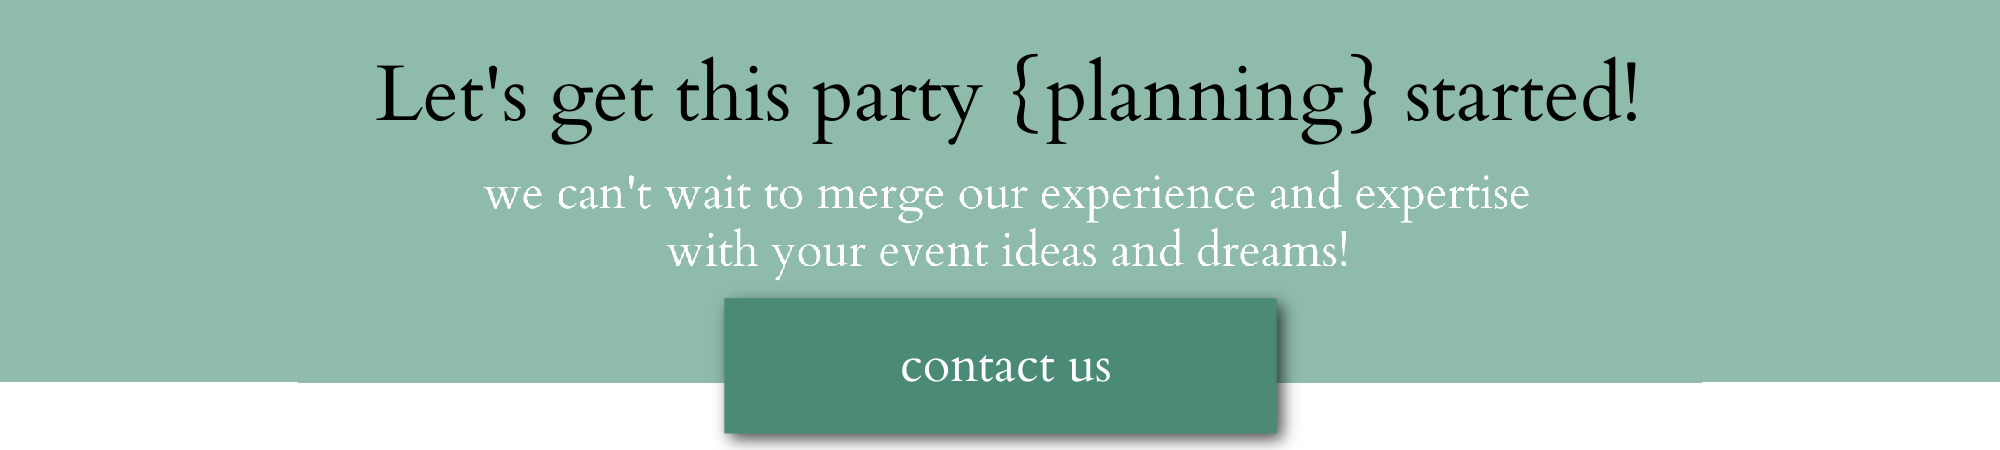 party contact